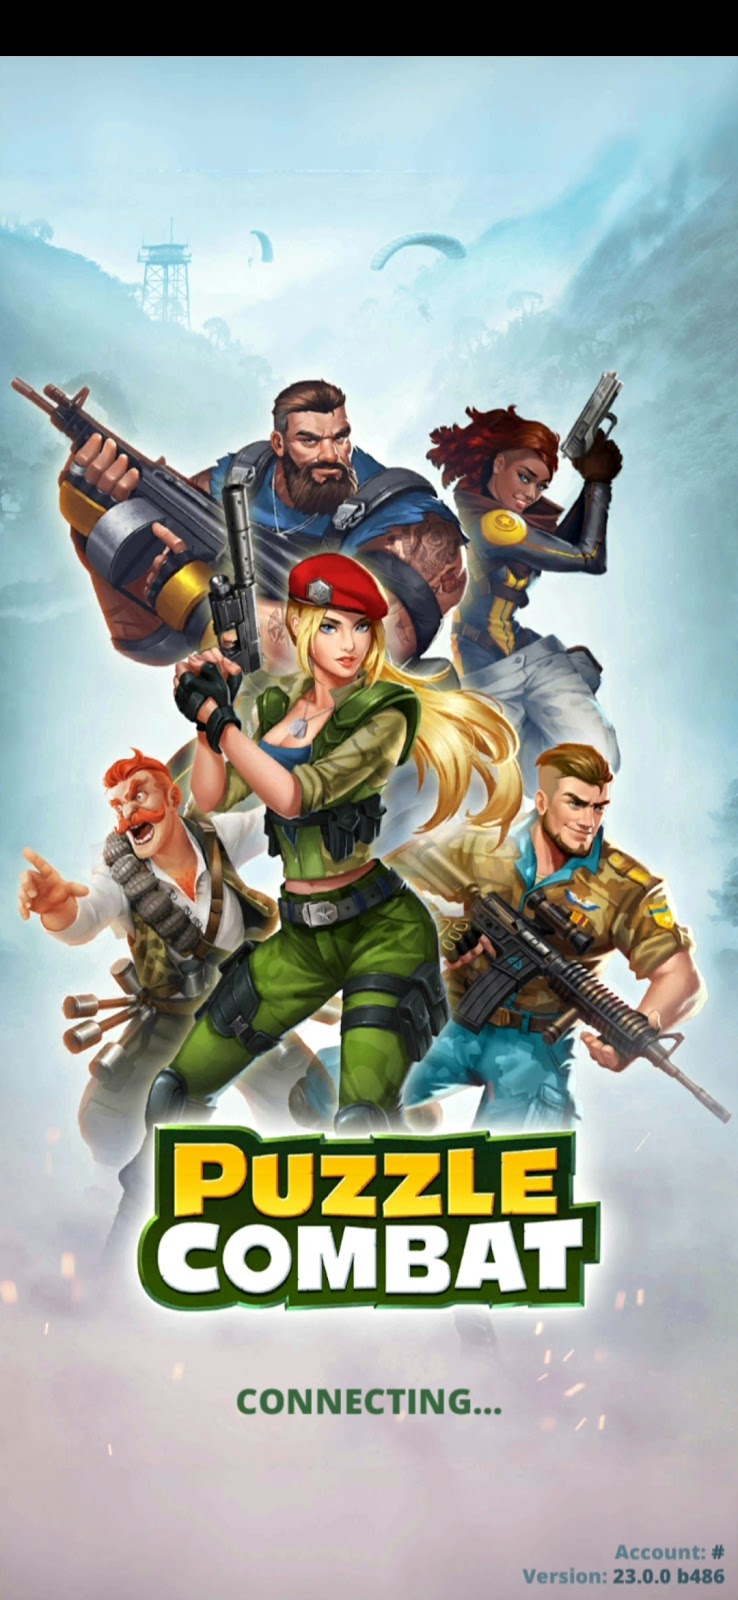 Puzzle Combat is Look Great | Game Reviews Small Giant Games